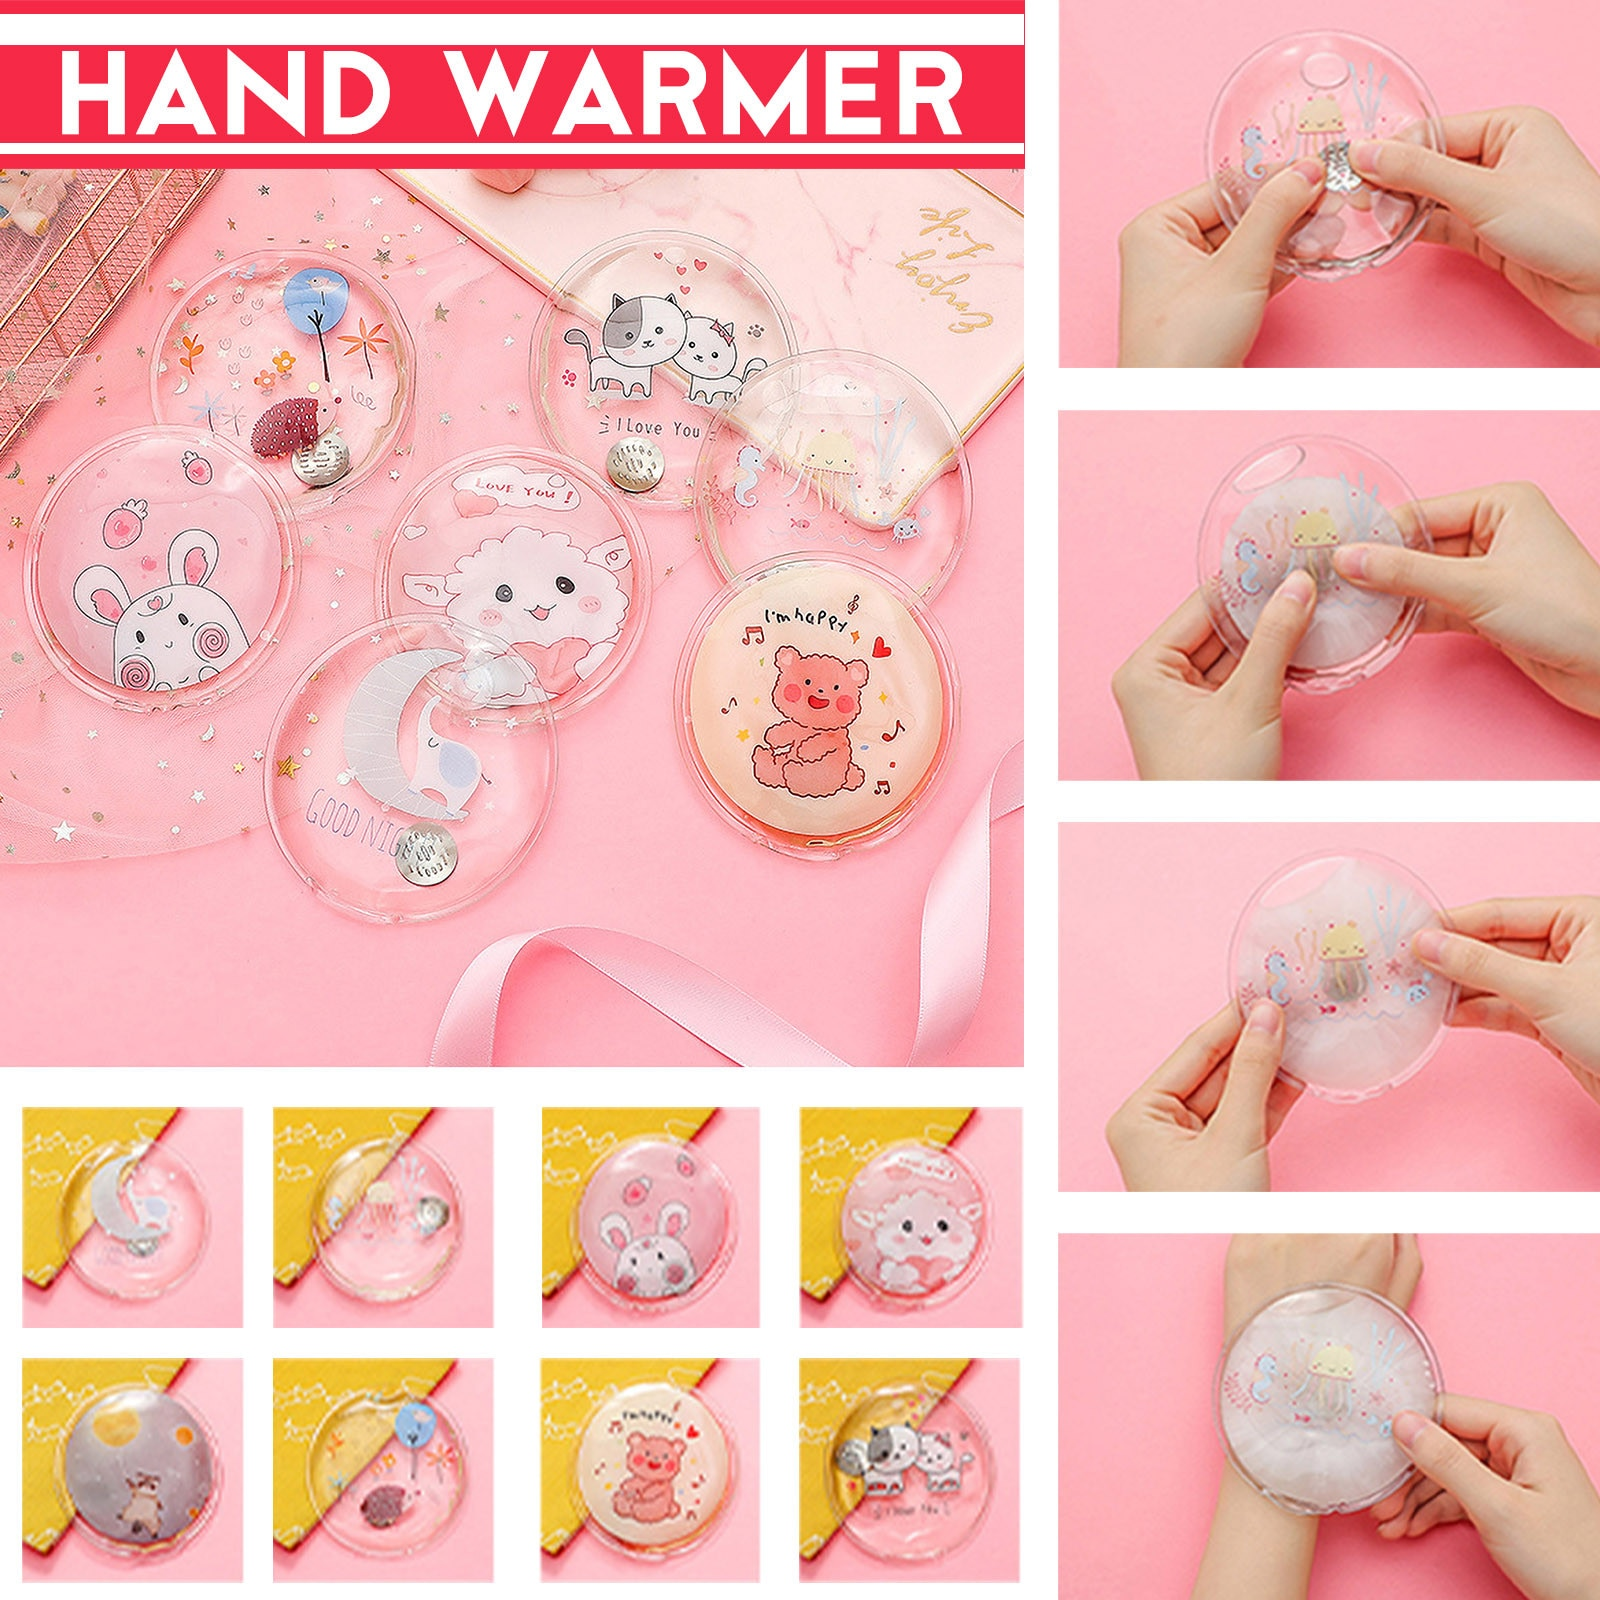 Mini Winter Reusable Gel Hand Warmer Cute Cartoon Instant Self Heating Pack Warmer Warm Supplies Hot